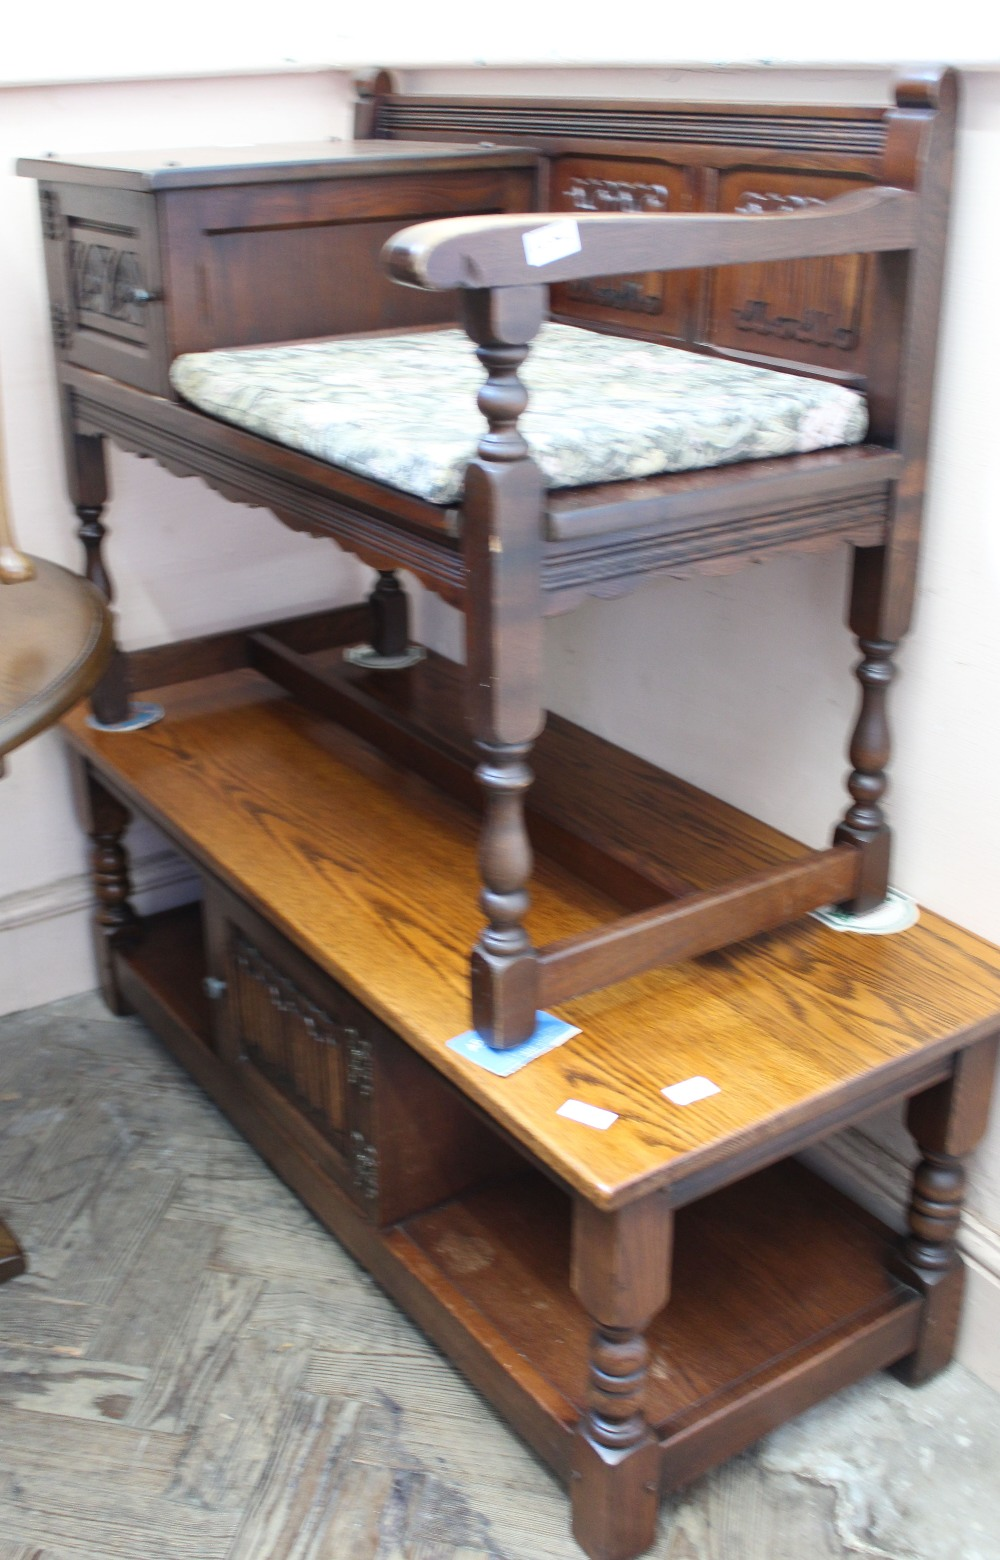 Lot 1052 - An Old Charm coffee table and telephone table